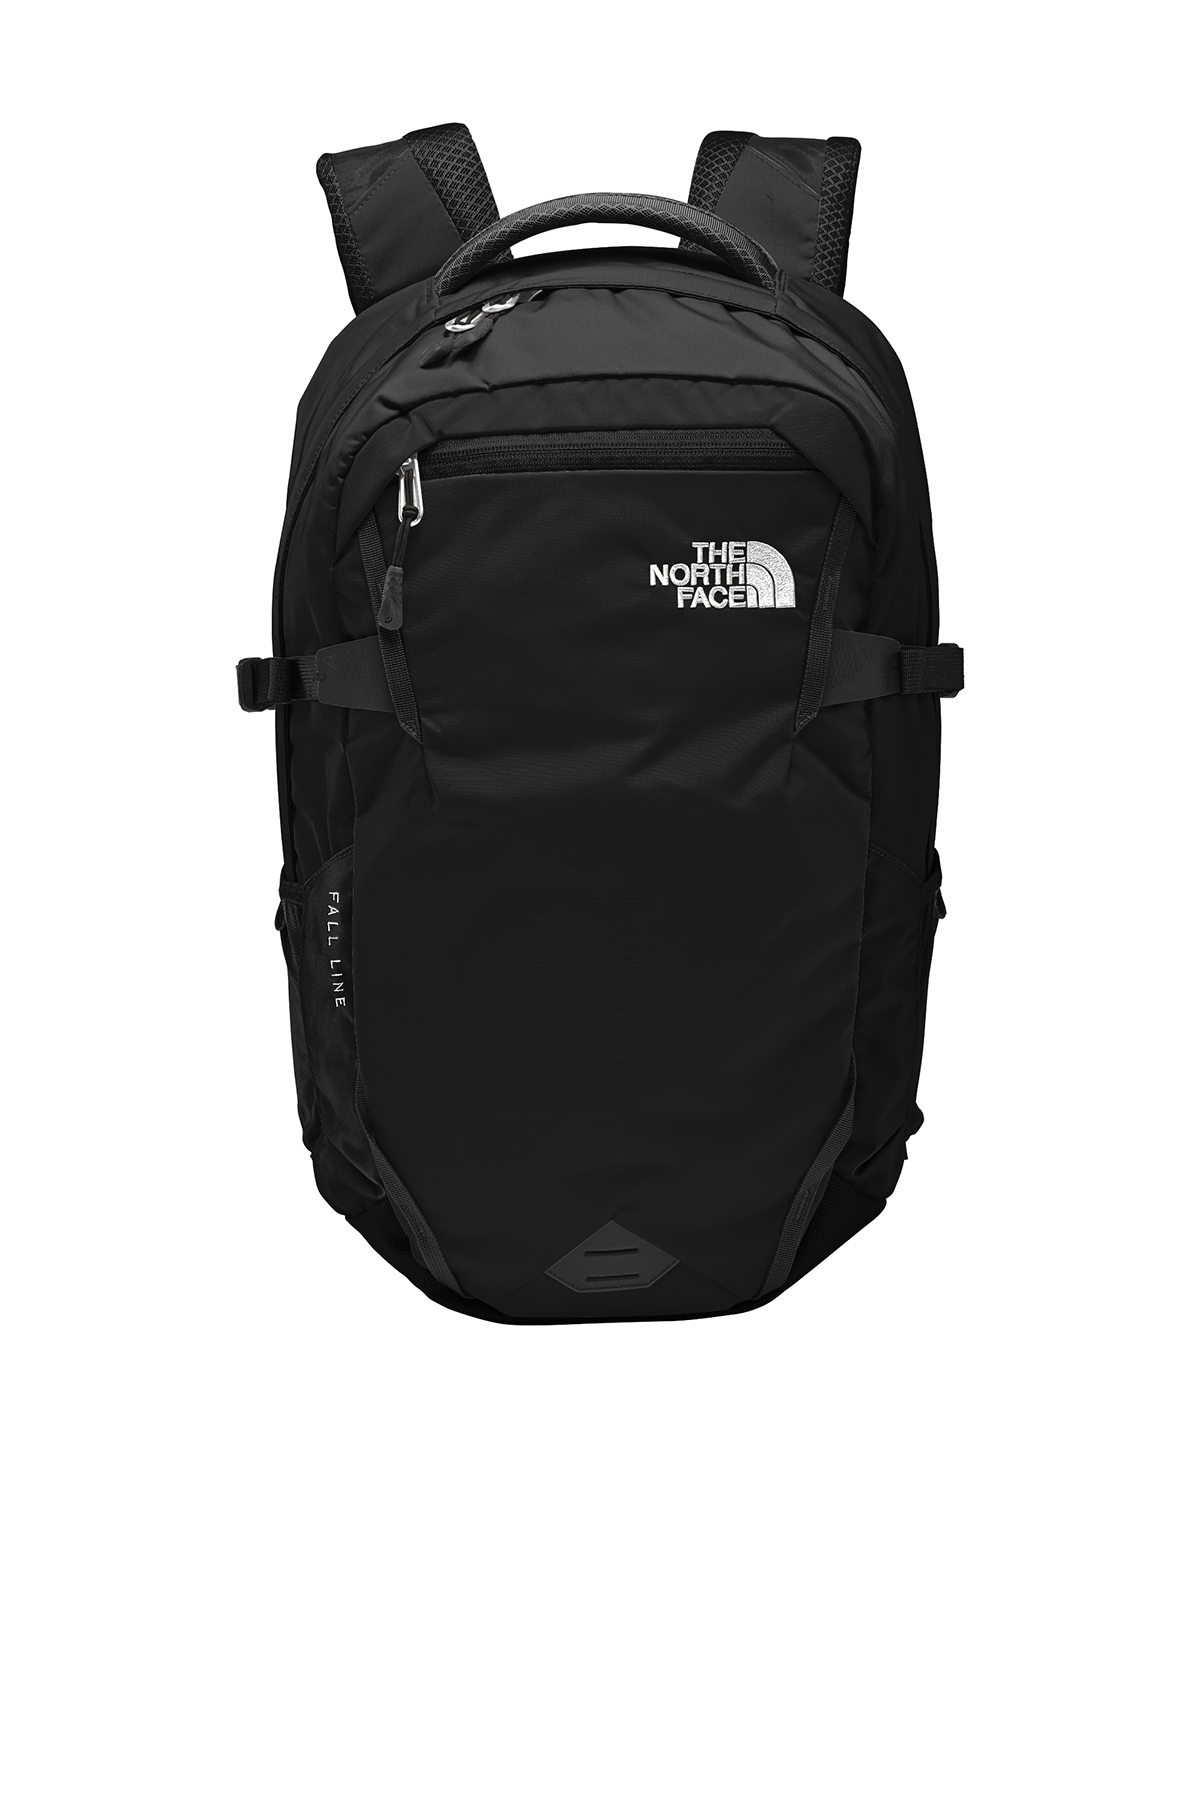 46ab1d40f The North Face ® Fall Line Backpack | The North Face | Brands ...